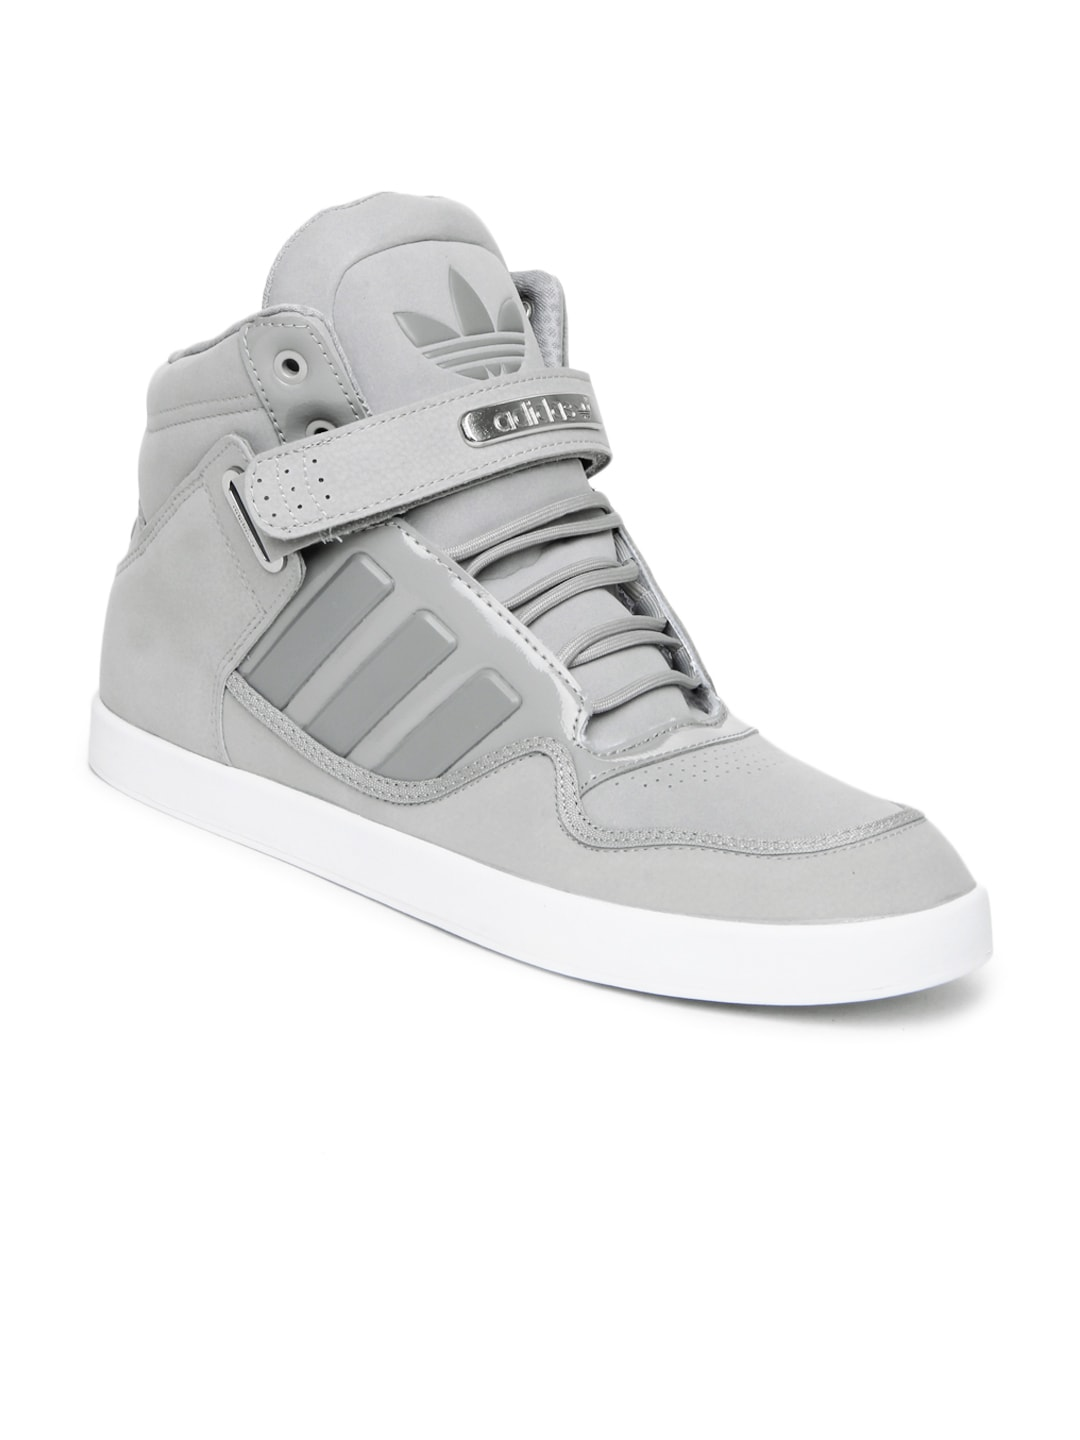 Adidas m25454 Originals Men Grey Ar 20 Casual Shoes- Price in India